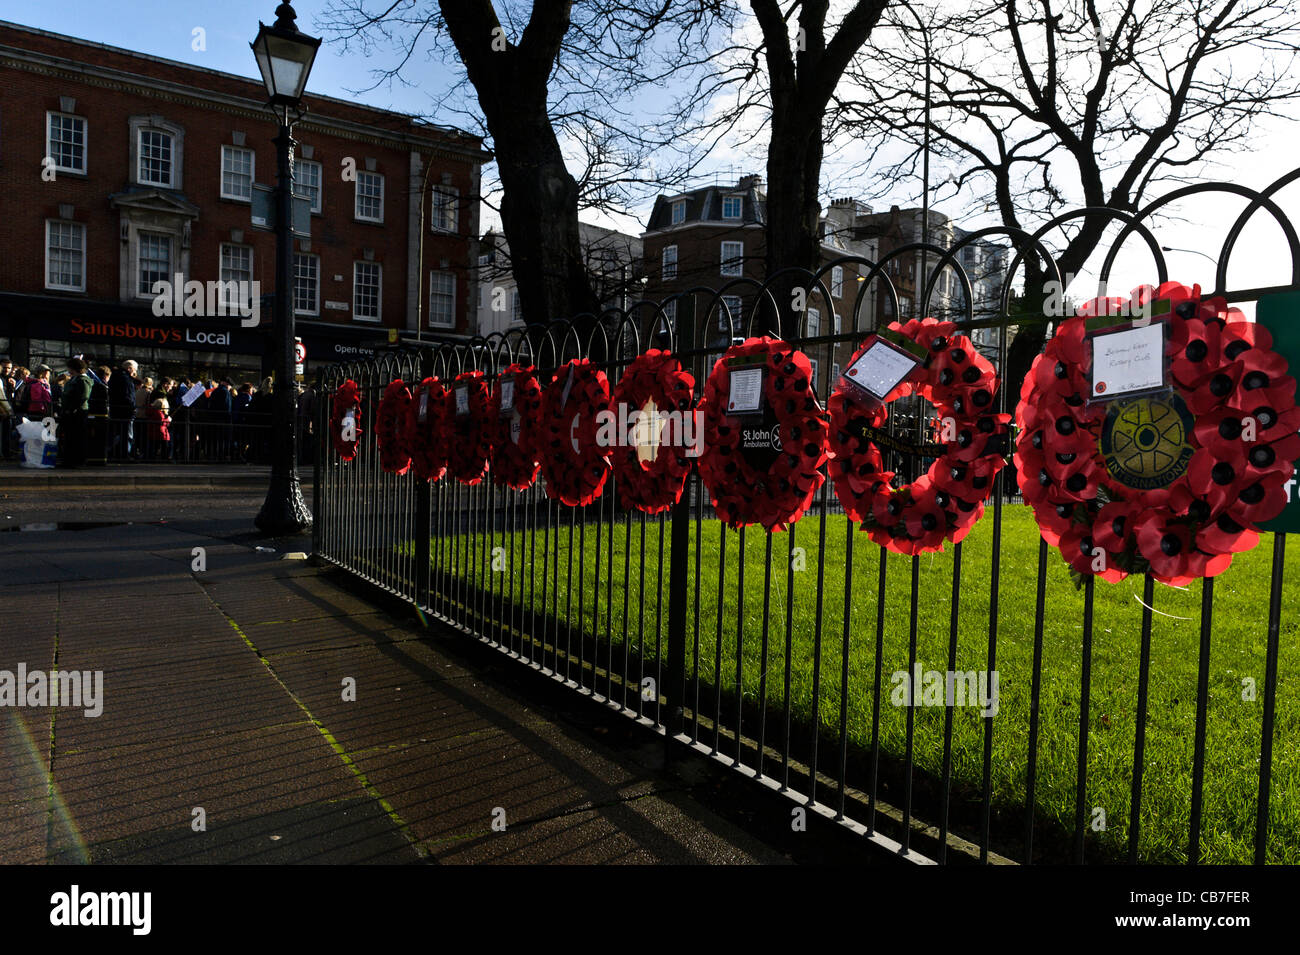 Poppy wreaths hang on a fence in Brighton after a rainfall - Stock Image